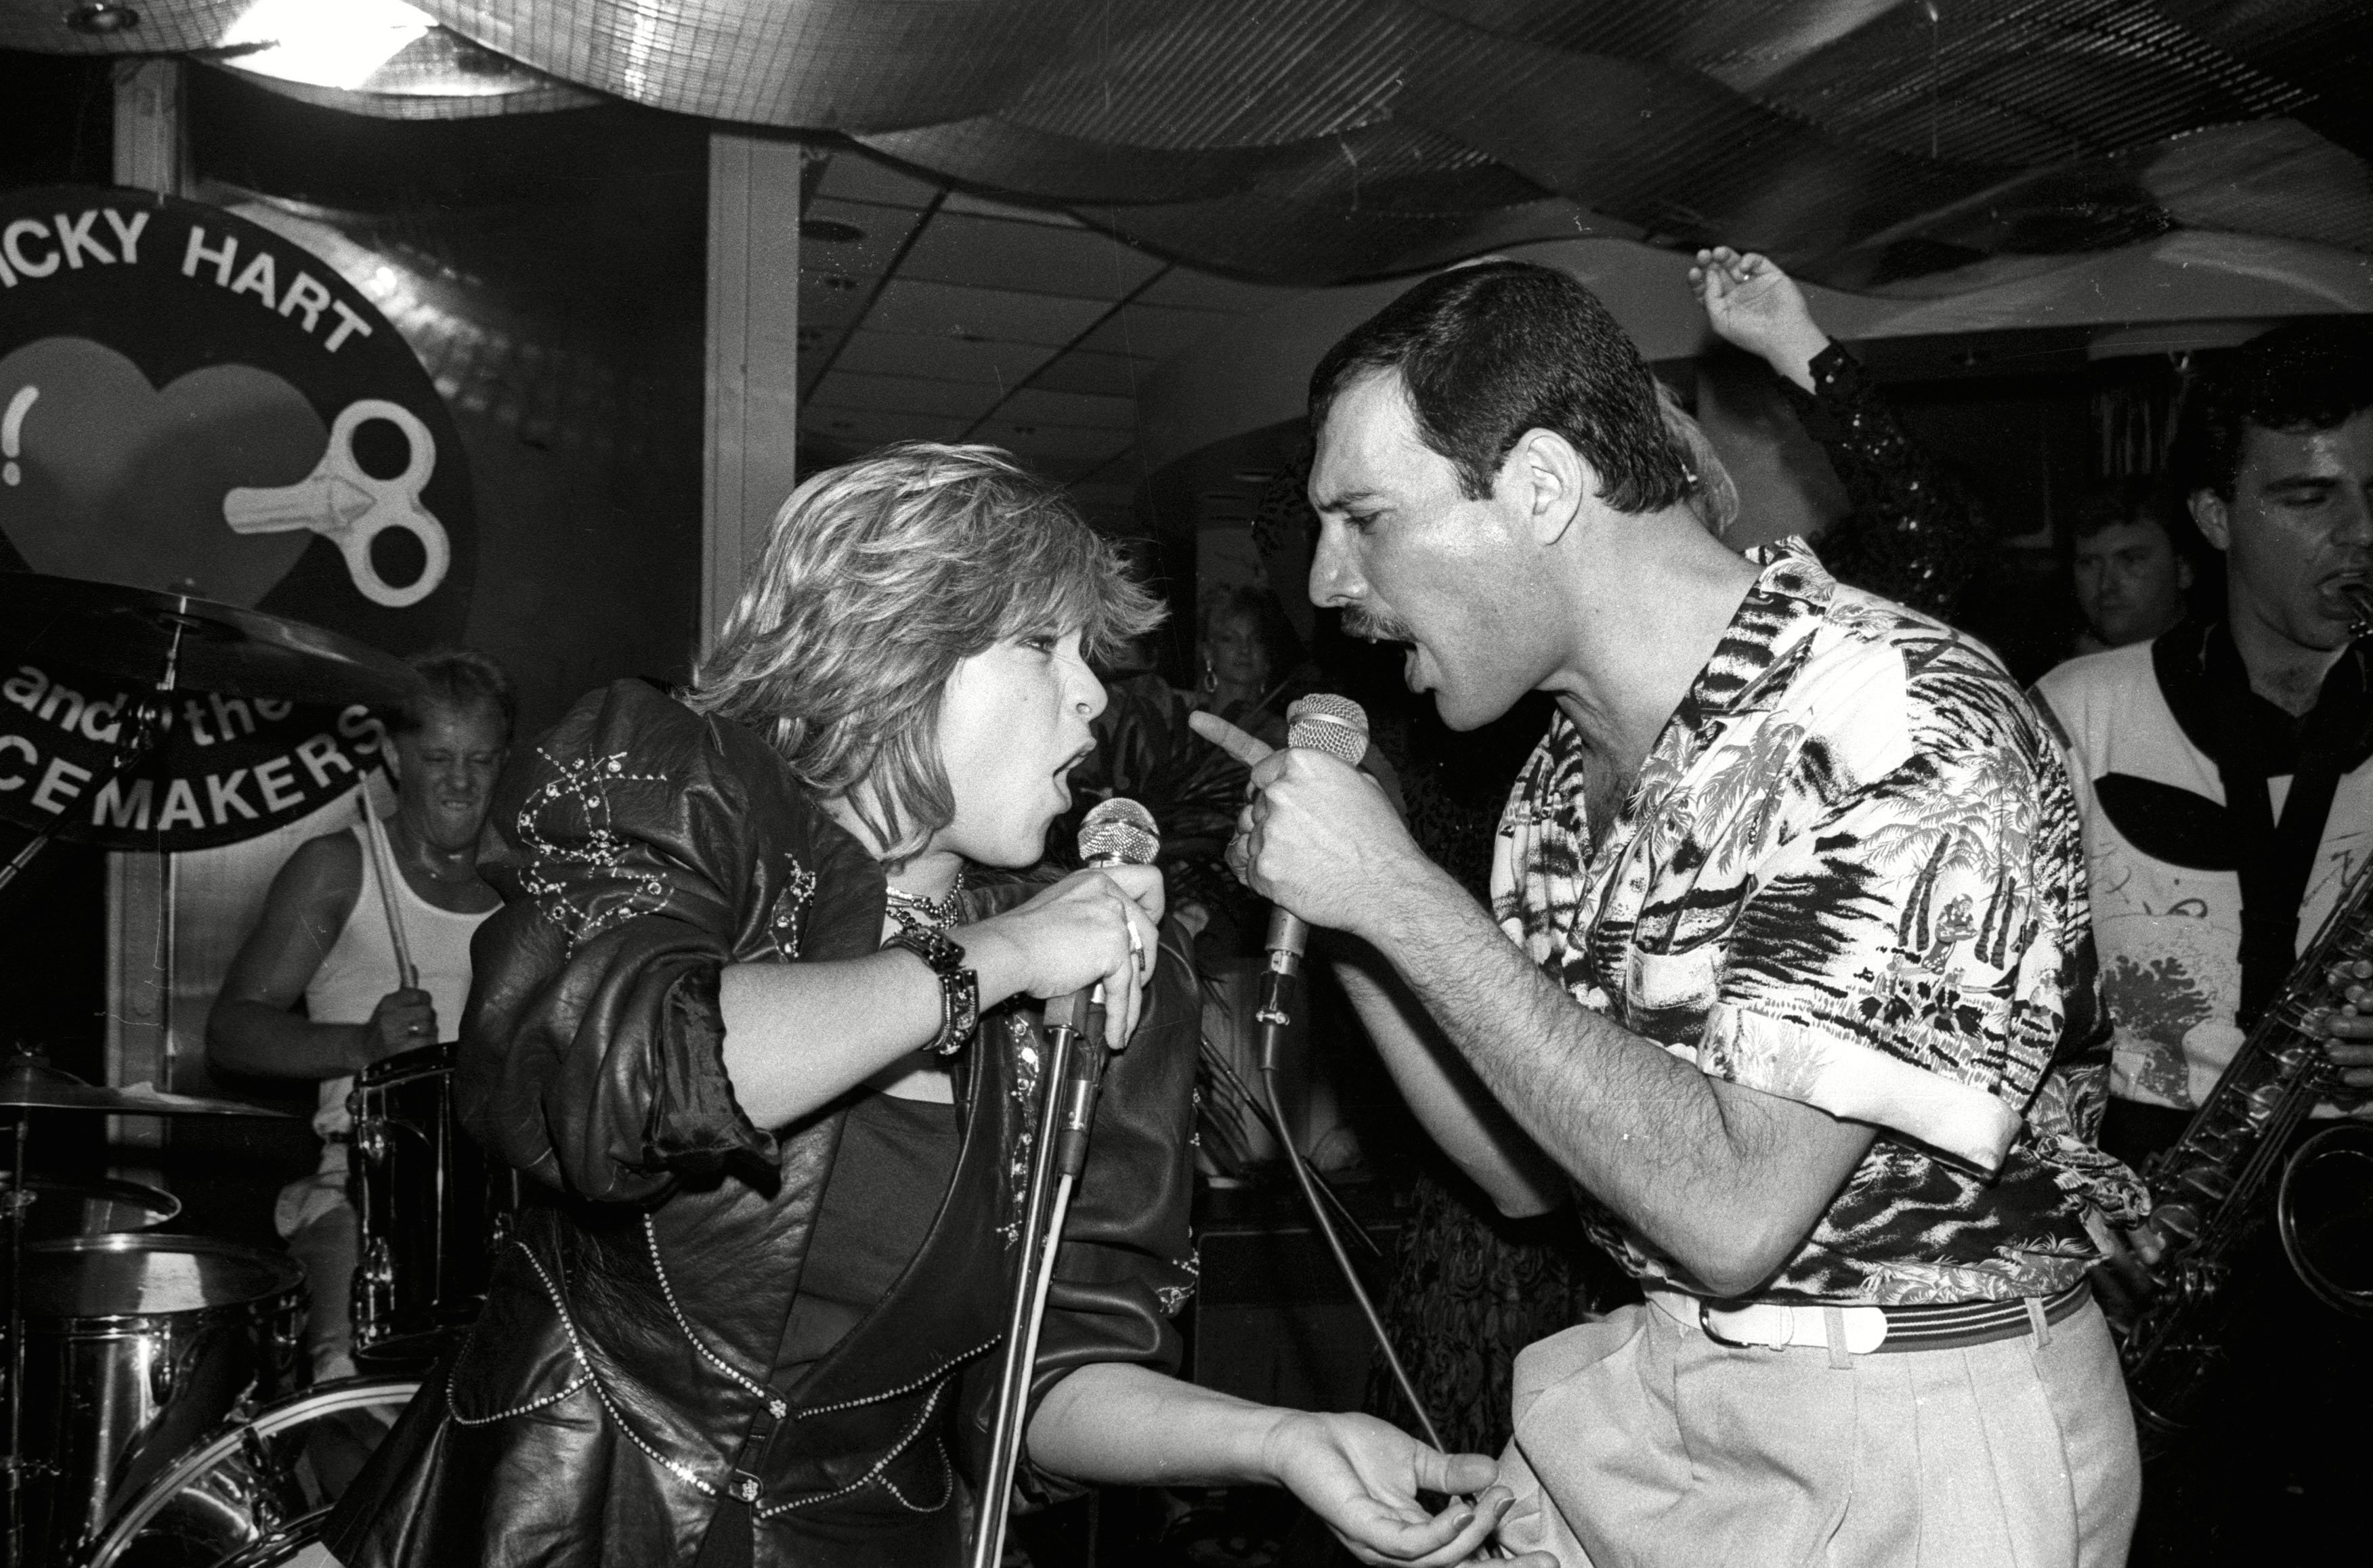 Queen Hold A Private Concert and Party and Were Billed As 'Dicky Heart and the Pacemakers' at the Kensington Roof Gardens - 11 Jul 1986